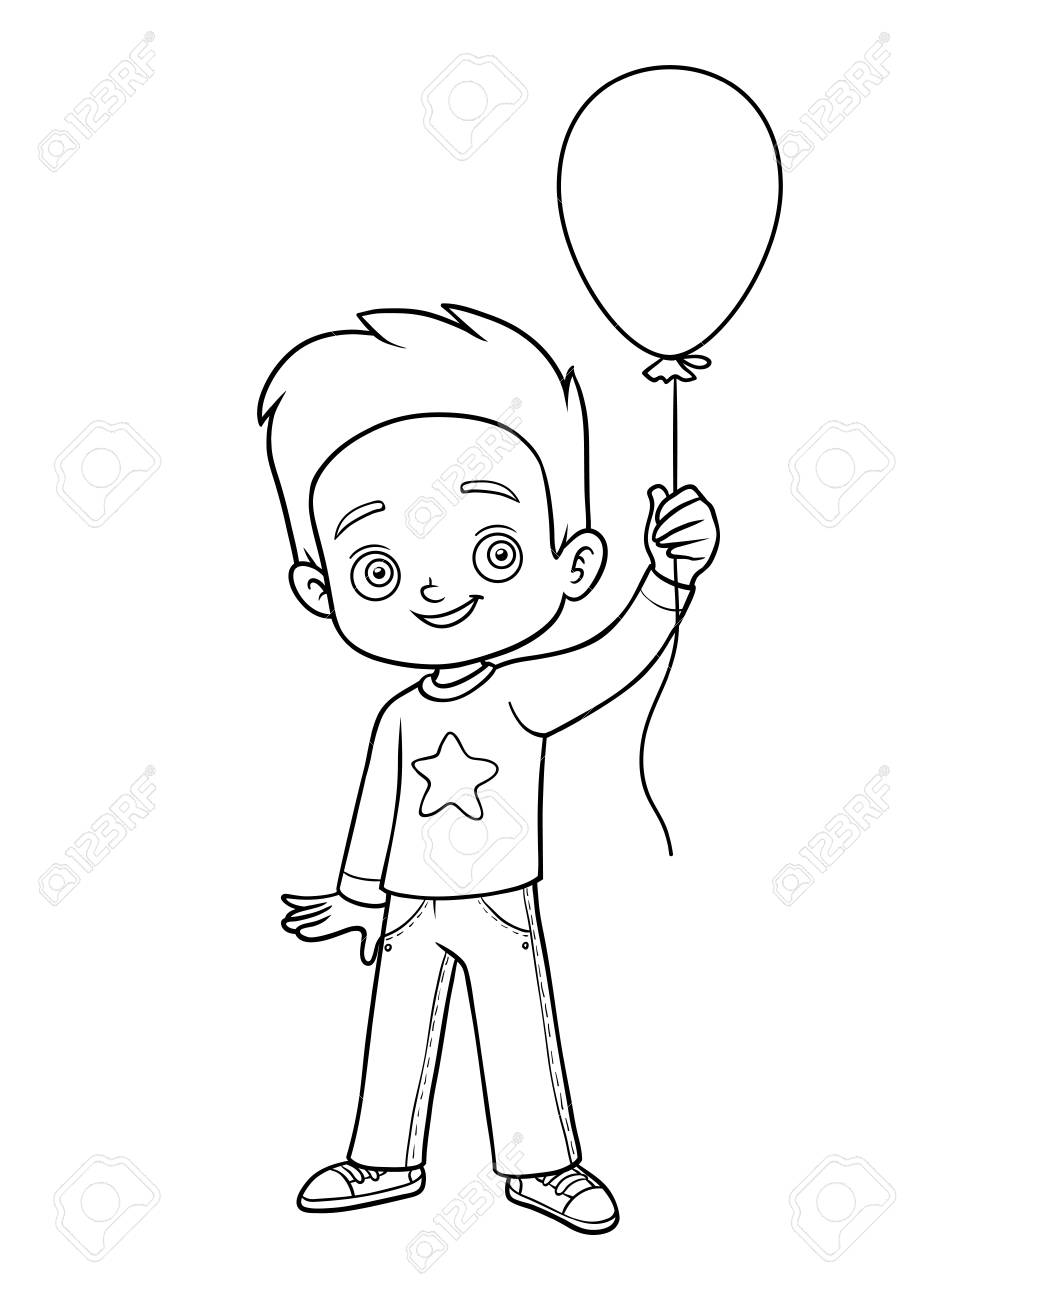 Coloring Book For Children, Boy And Balloon Royalty Free Cliparts ...